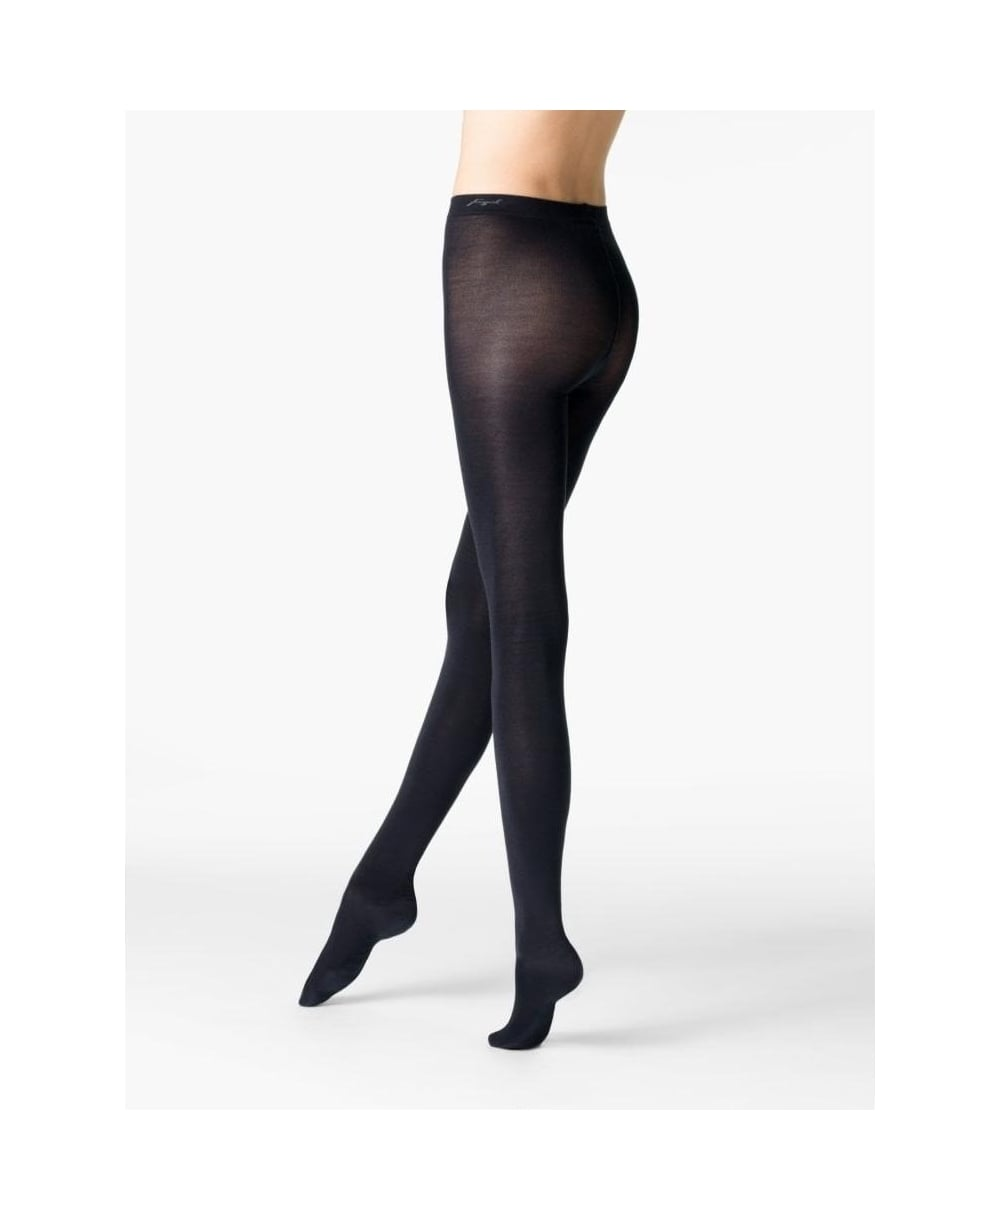 941ff09a3a5 Fogal Silky Opaque Tights - Tights from luxury-legs.com UK